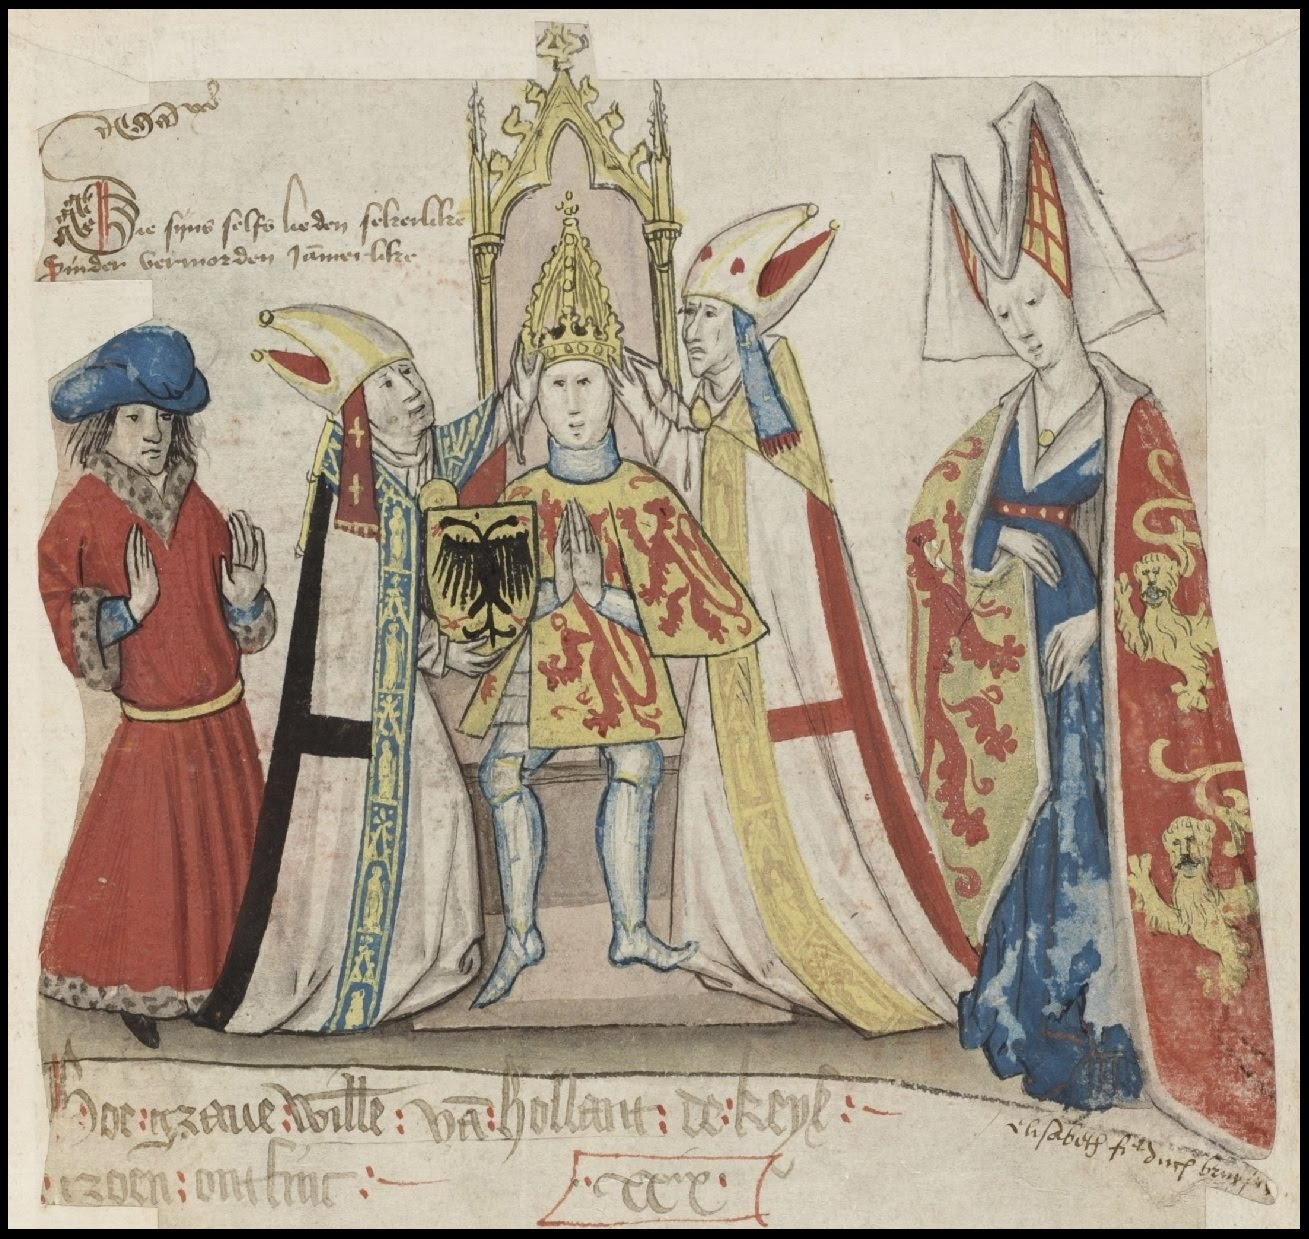 medieval manuscript illustration of Duke on throne being crowned by biships